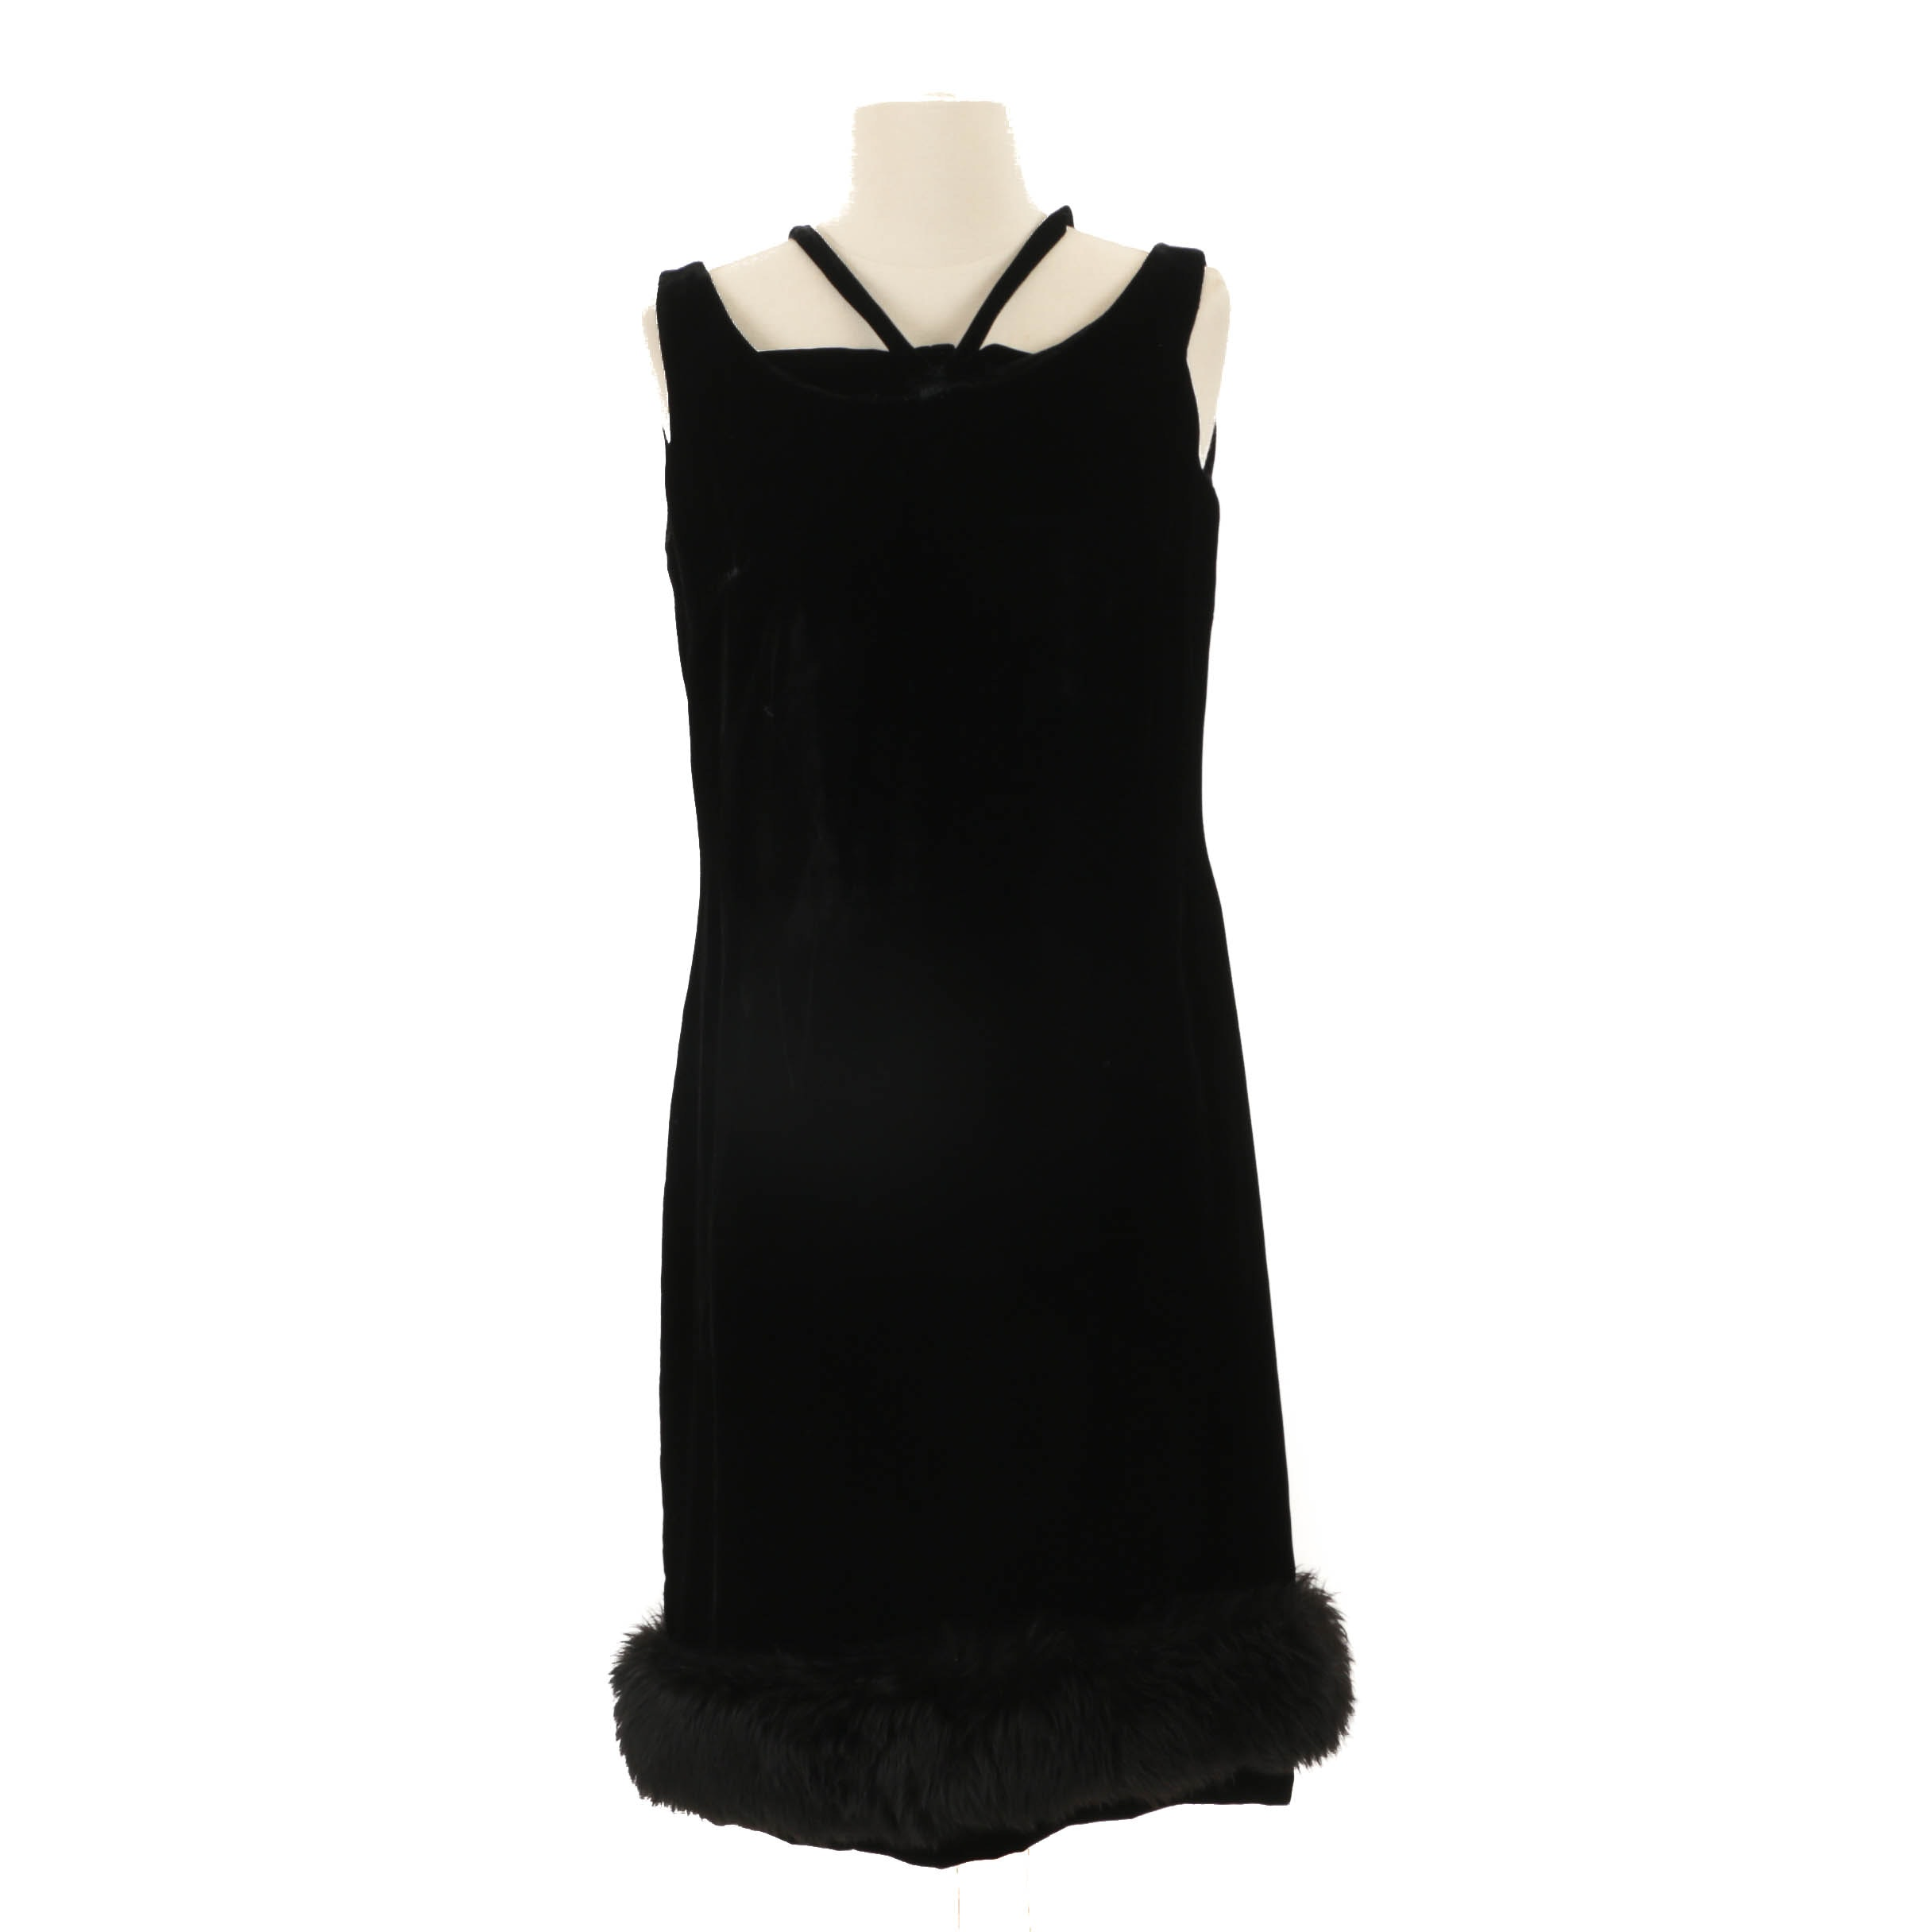 1960s Vintage Alfred Werber Black Velvet Sleeveless Cocktail Dress